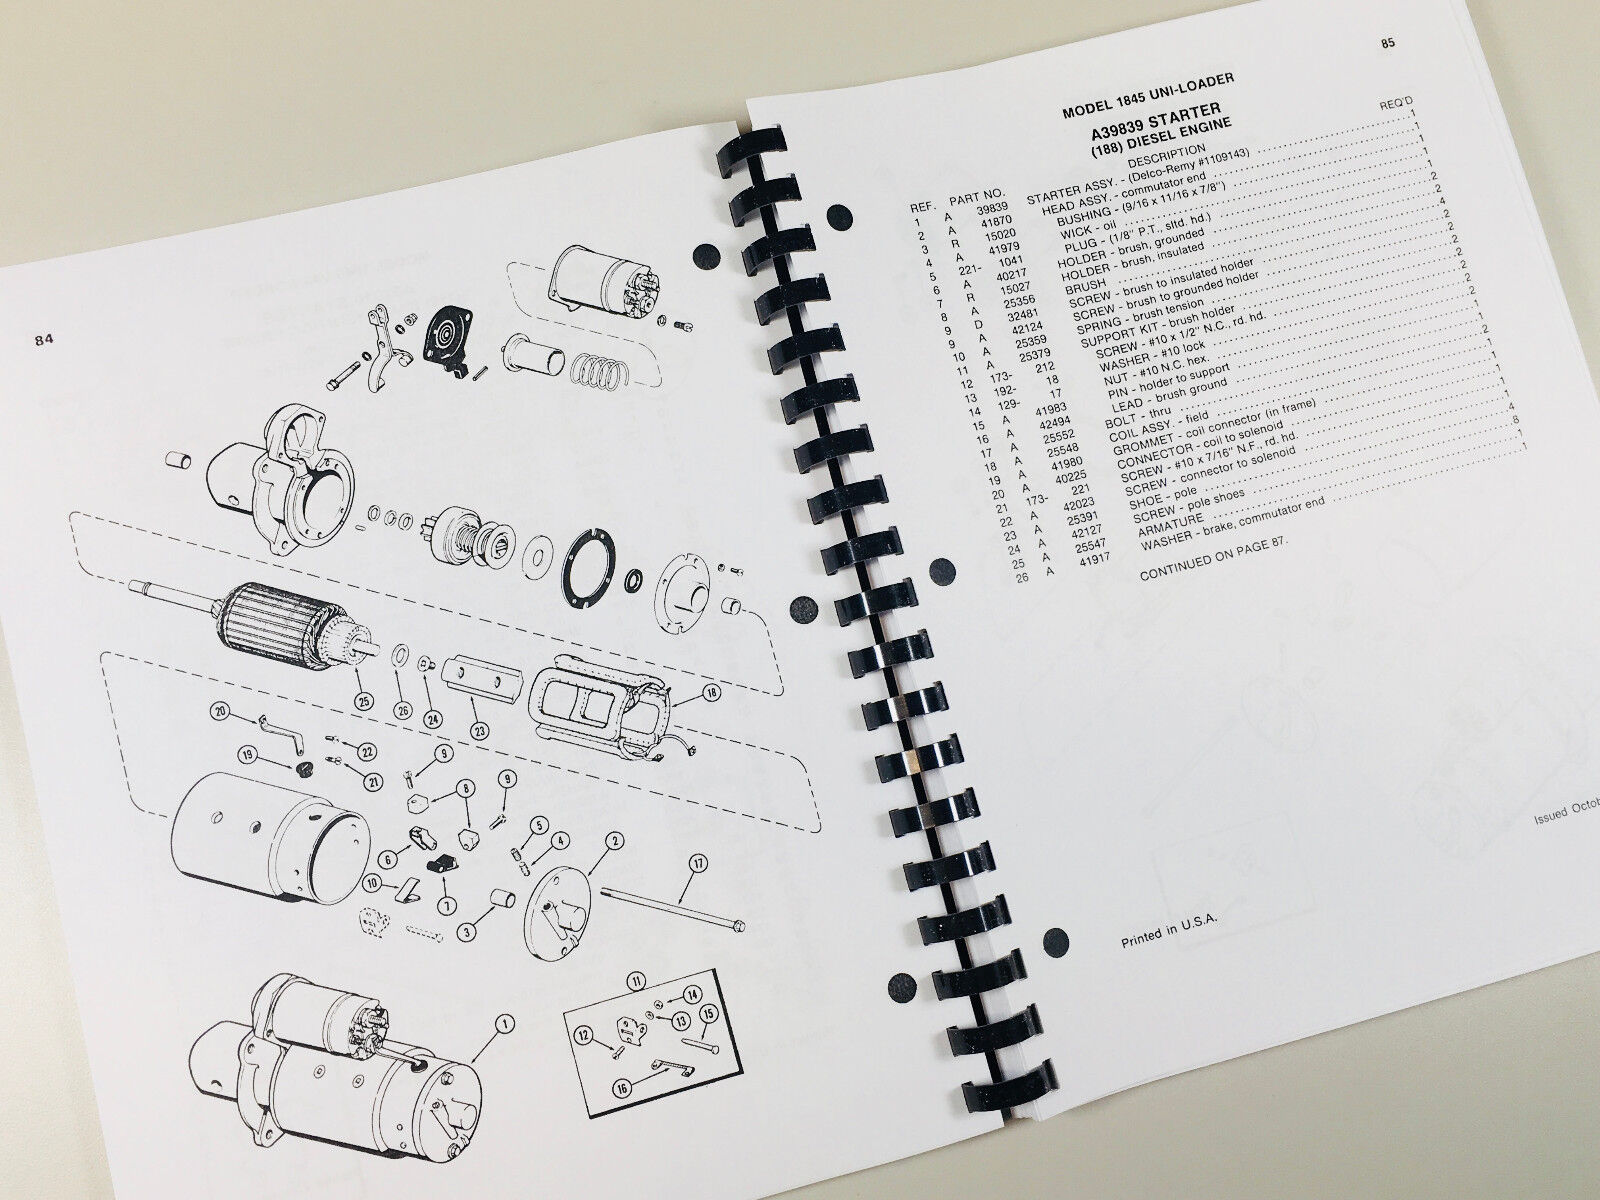 The parts manual shows you how components go back together